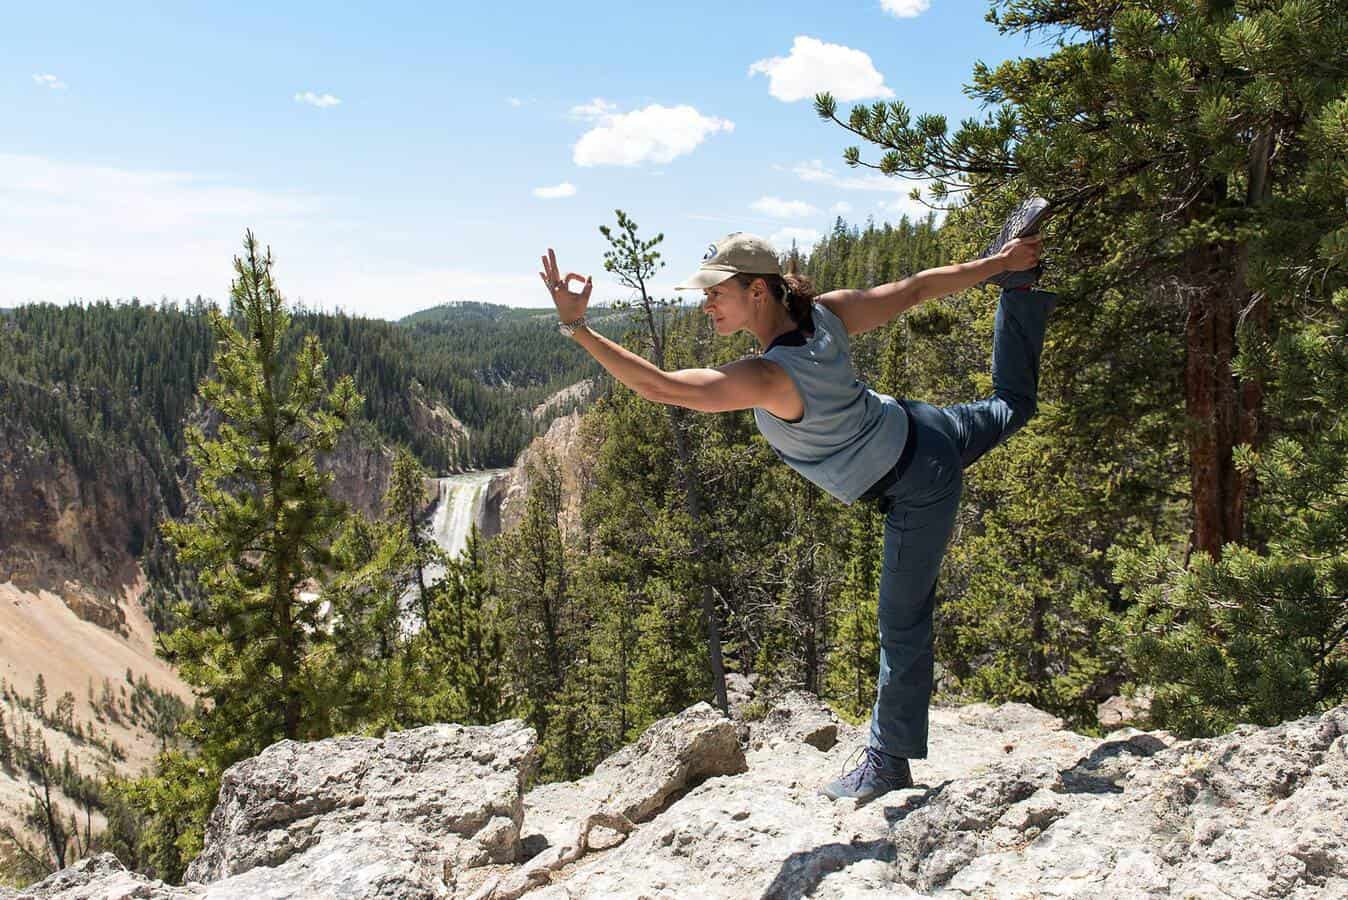 Yoga retreat in Bozeman, Montana